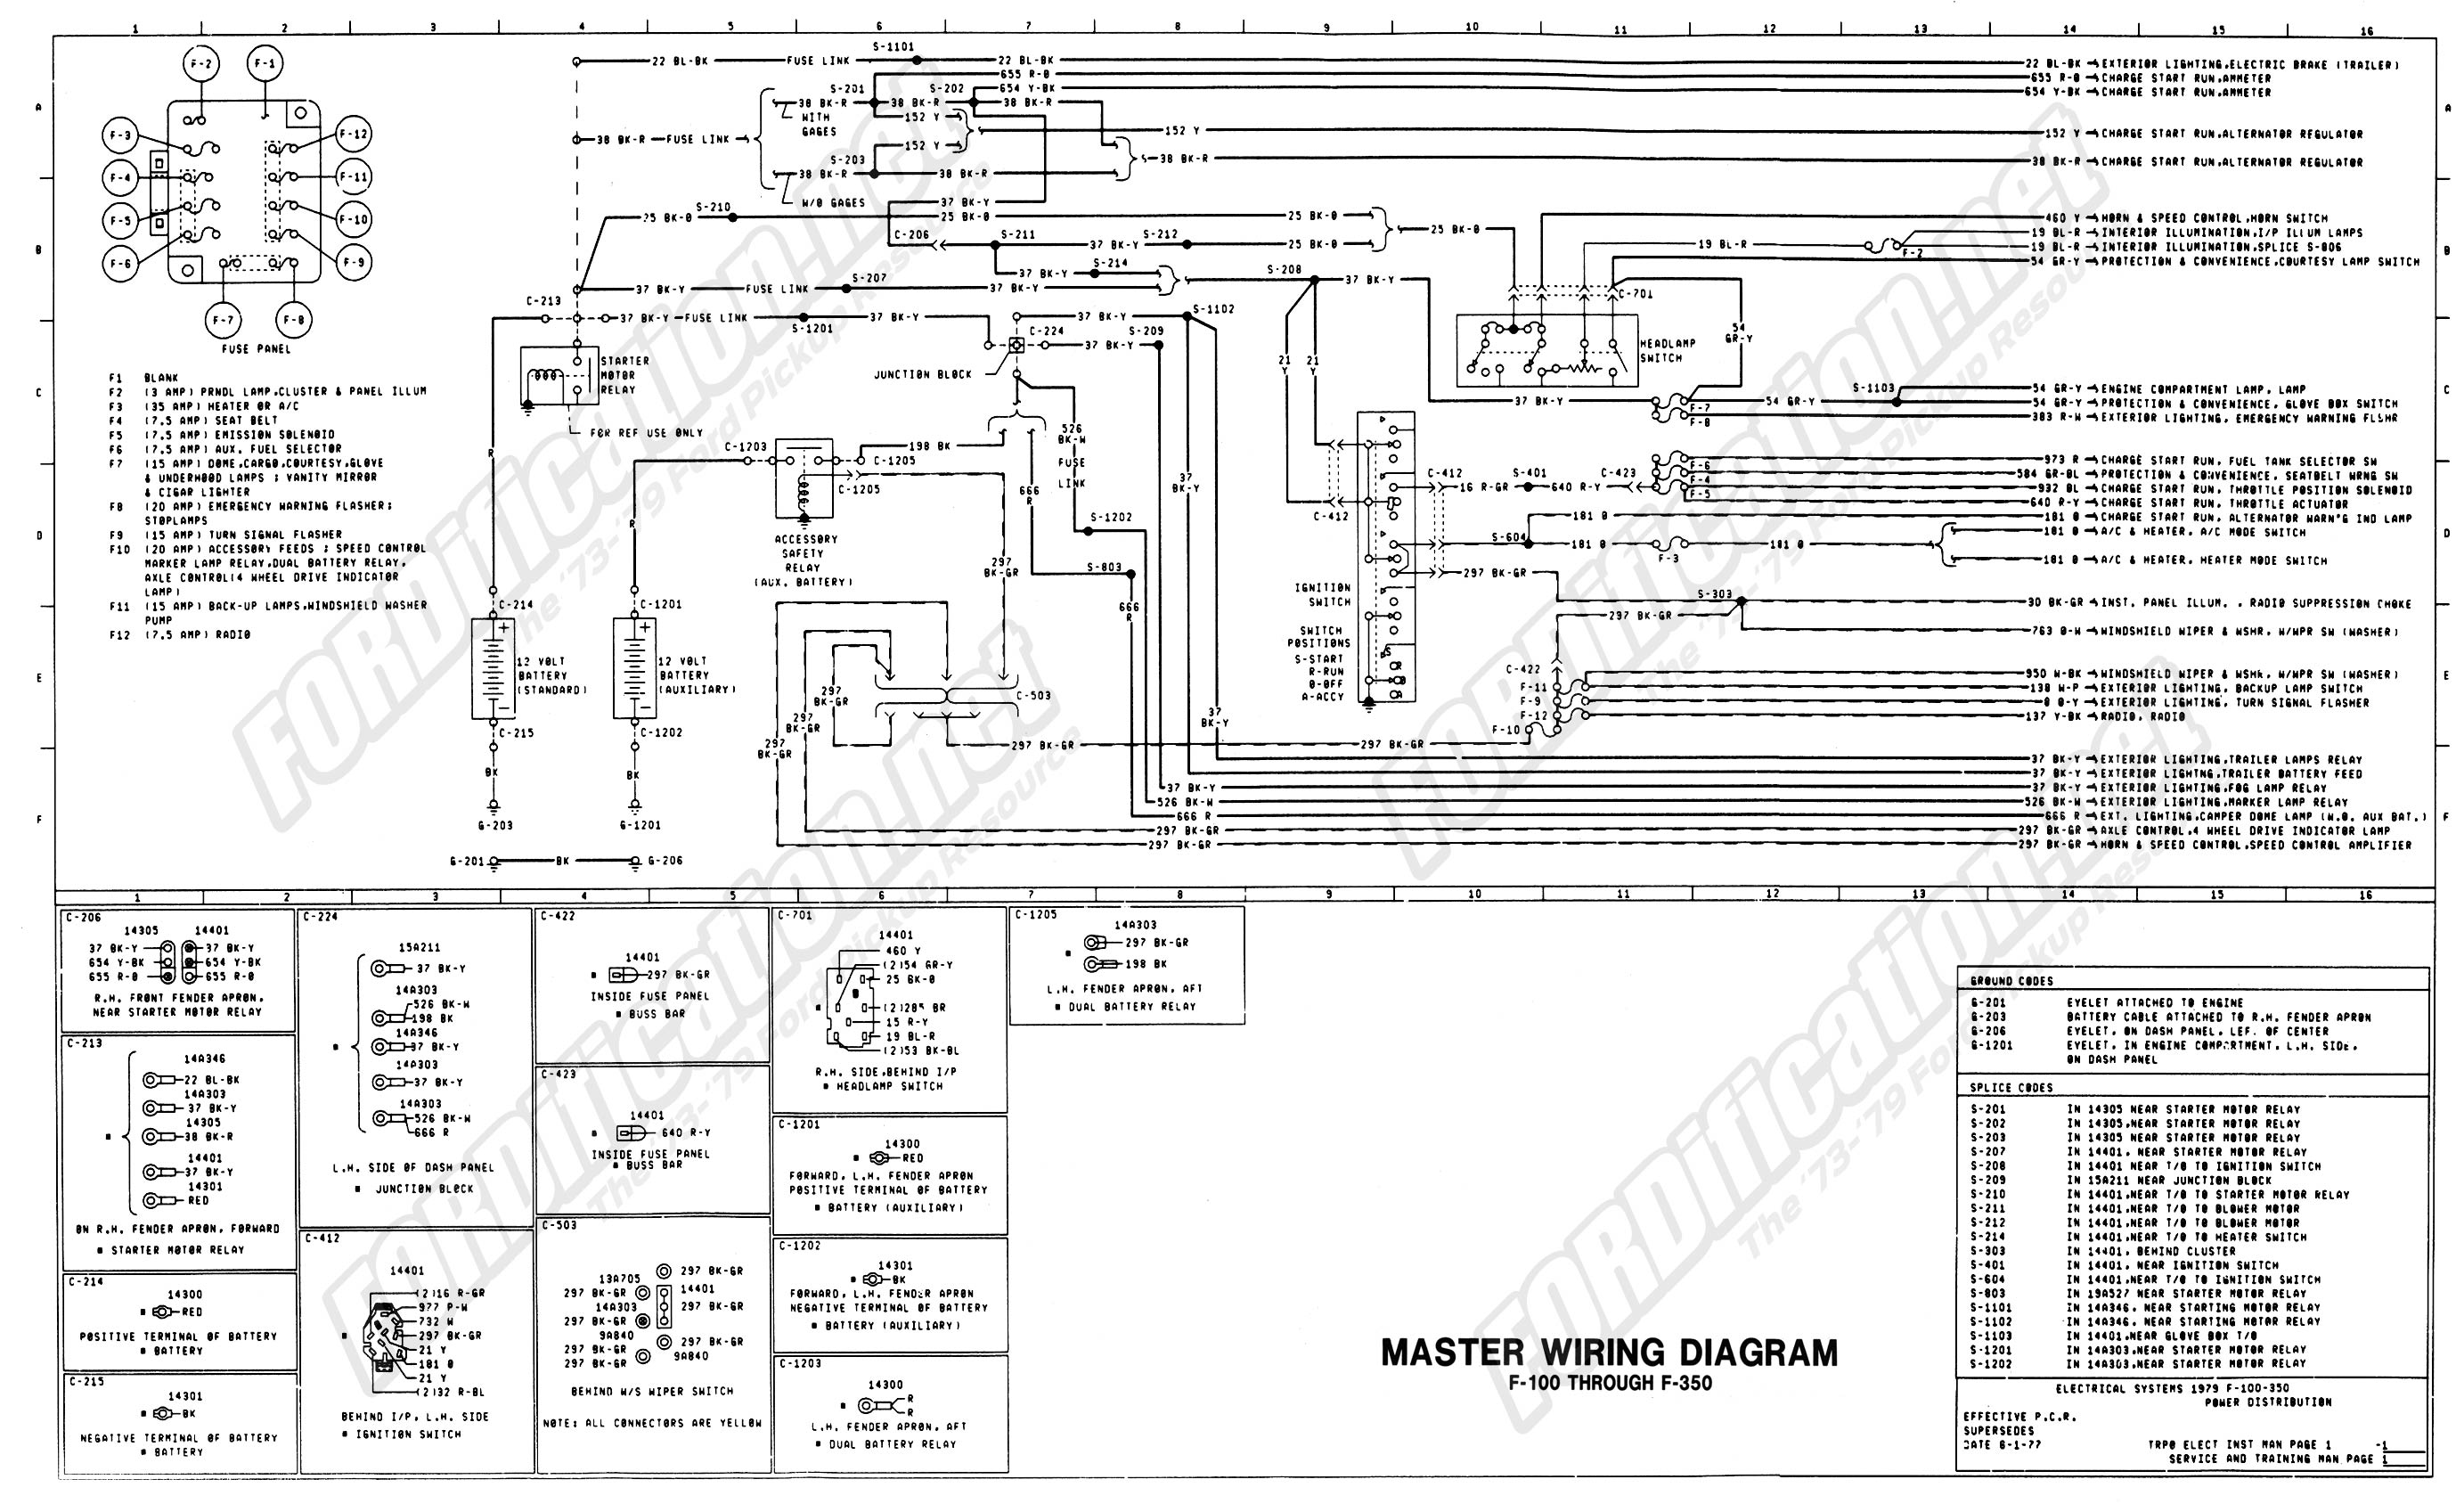 277 Volt Wiring Diagram Wiring Harness Wiring Diagram Wiring